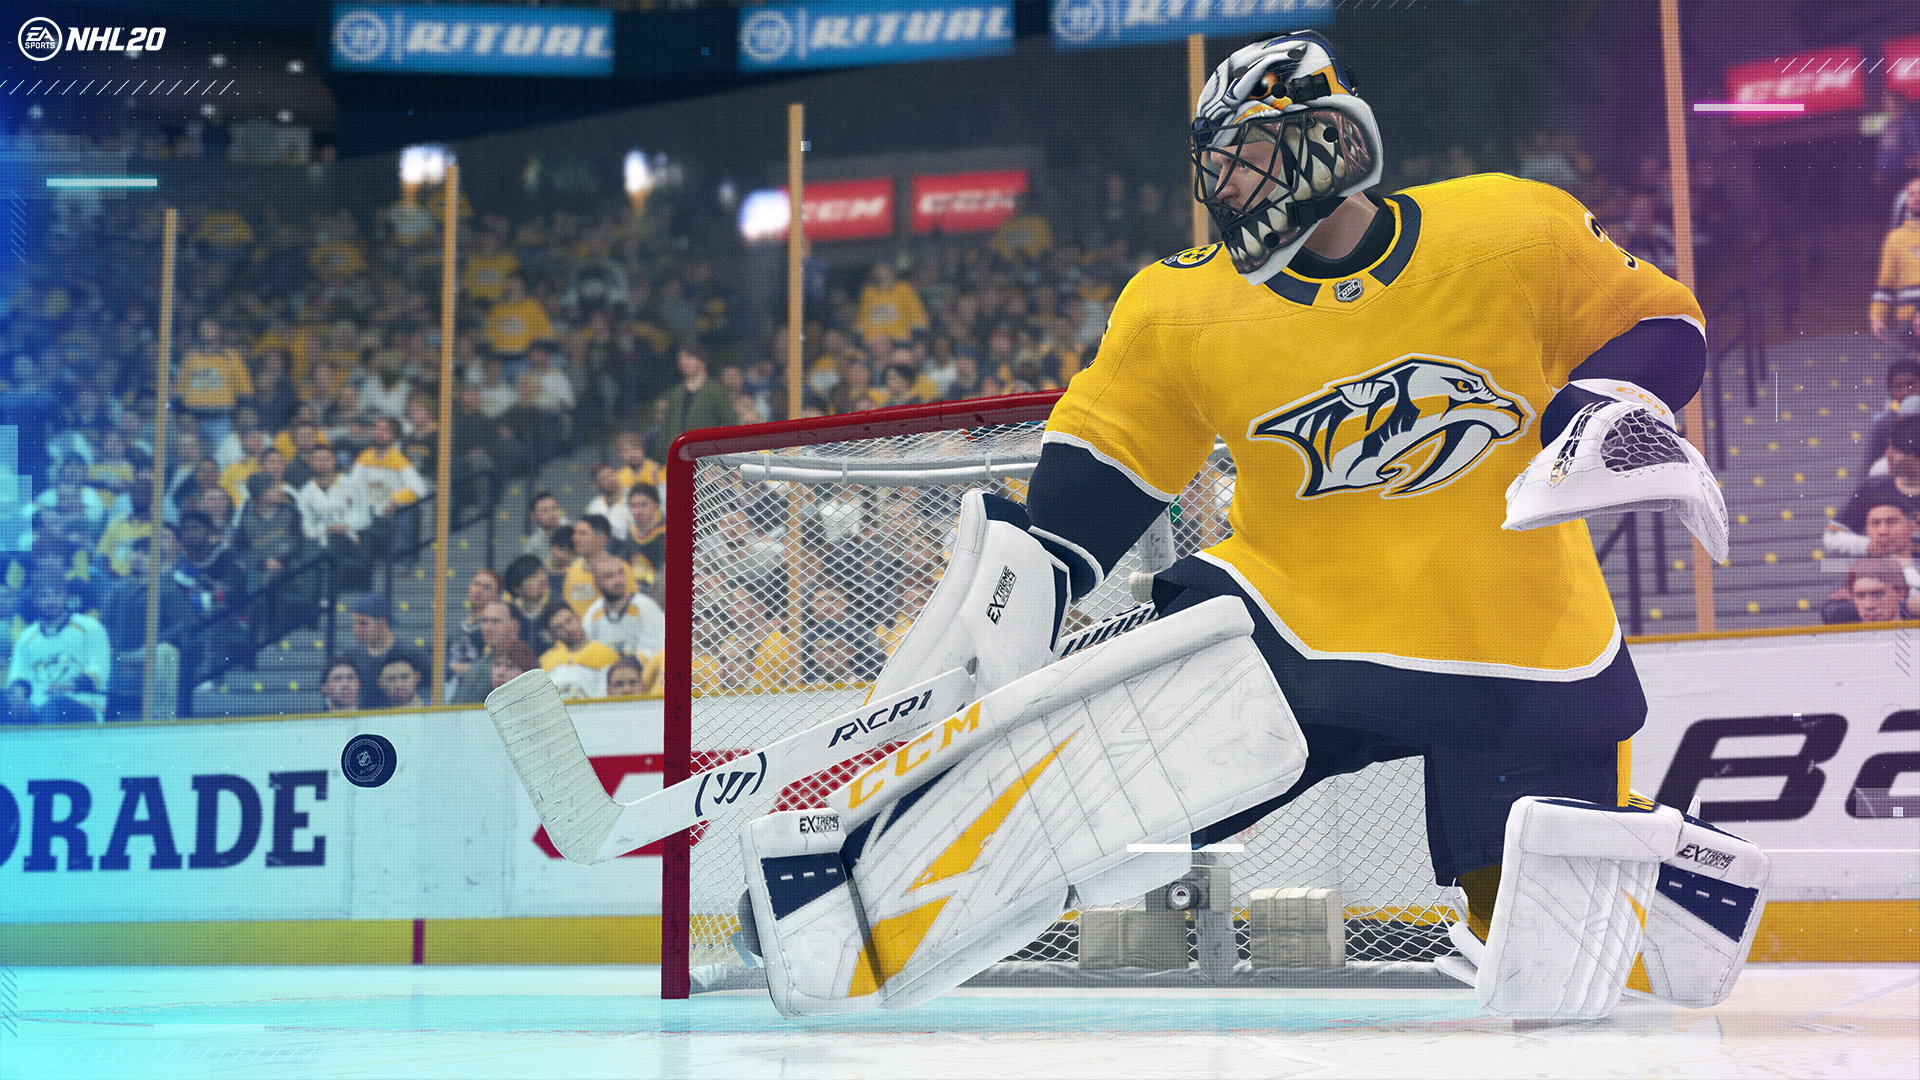 entrevue william ho nhl 20